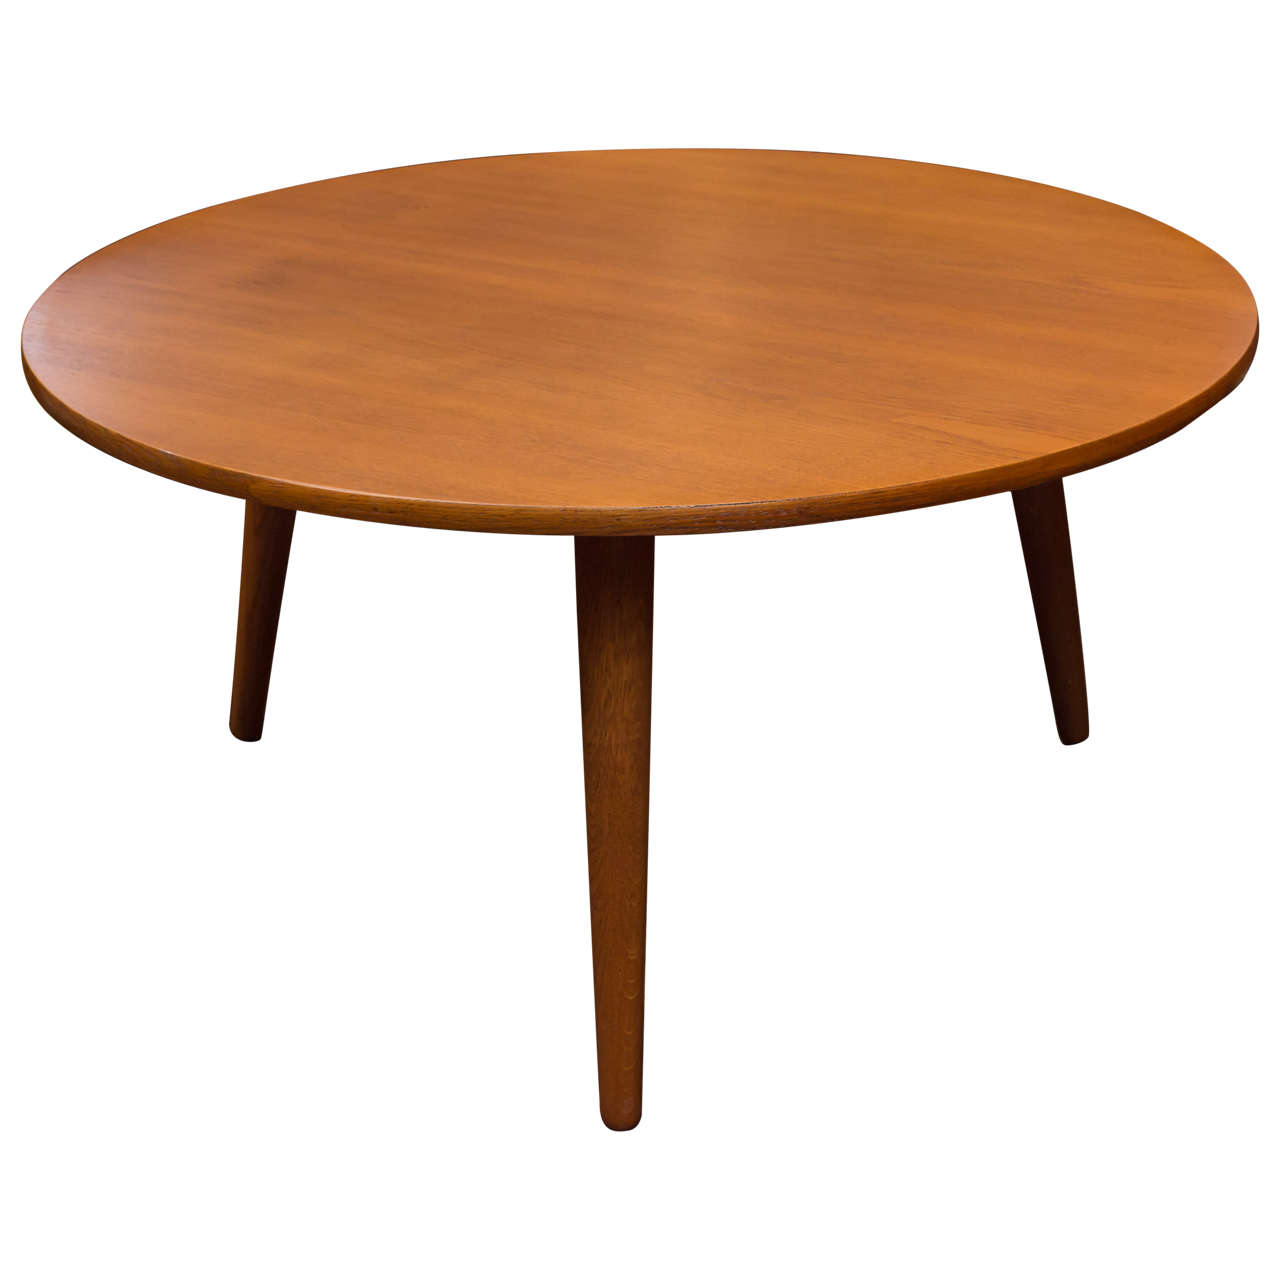 Hans J Wegner Coffee Table